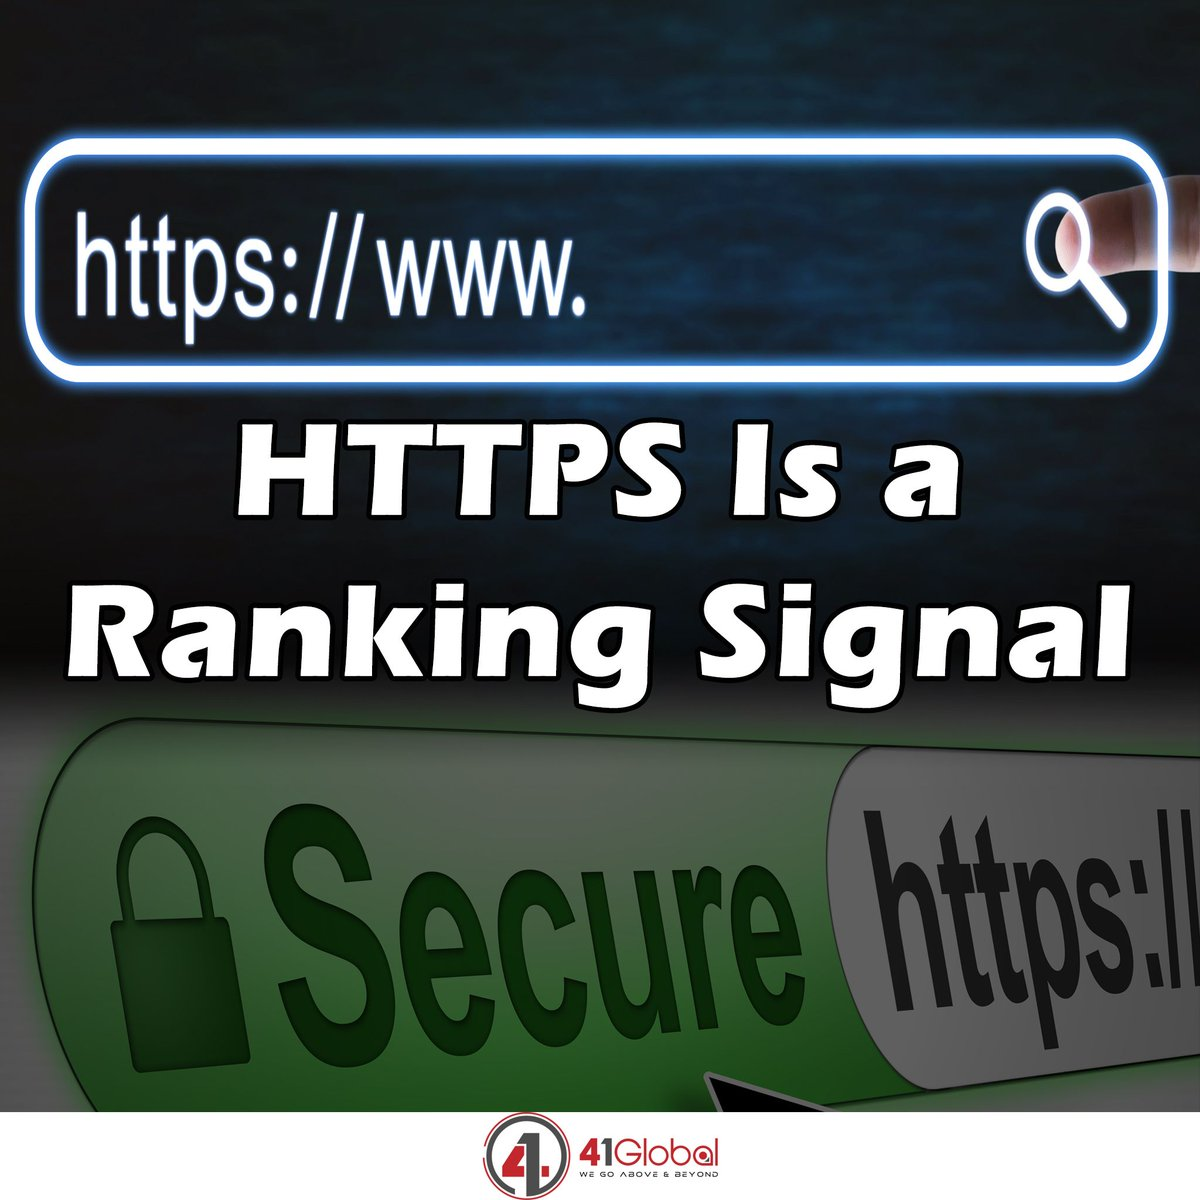 If visitors notice that you don't have HTTPS in your URL, they could leave right away.  They may also get a notification that your site isn't secure, and it's almost guaranteed that they'll leave asap following the security notification. #41global #SEO #socialmedia #security #web https://t.co/33lotstI6Z